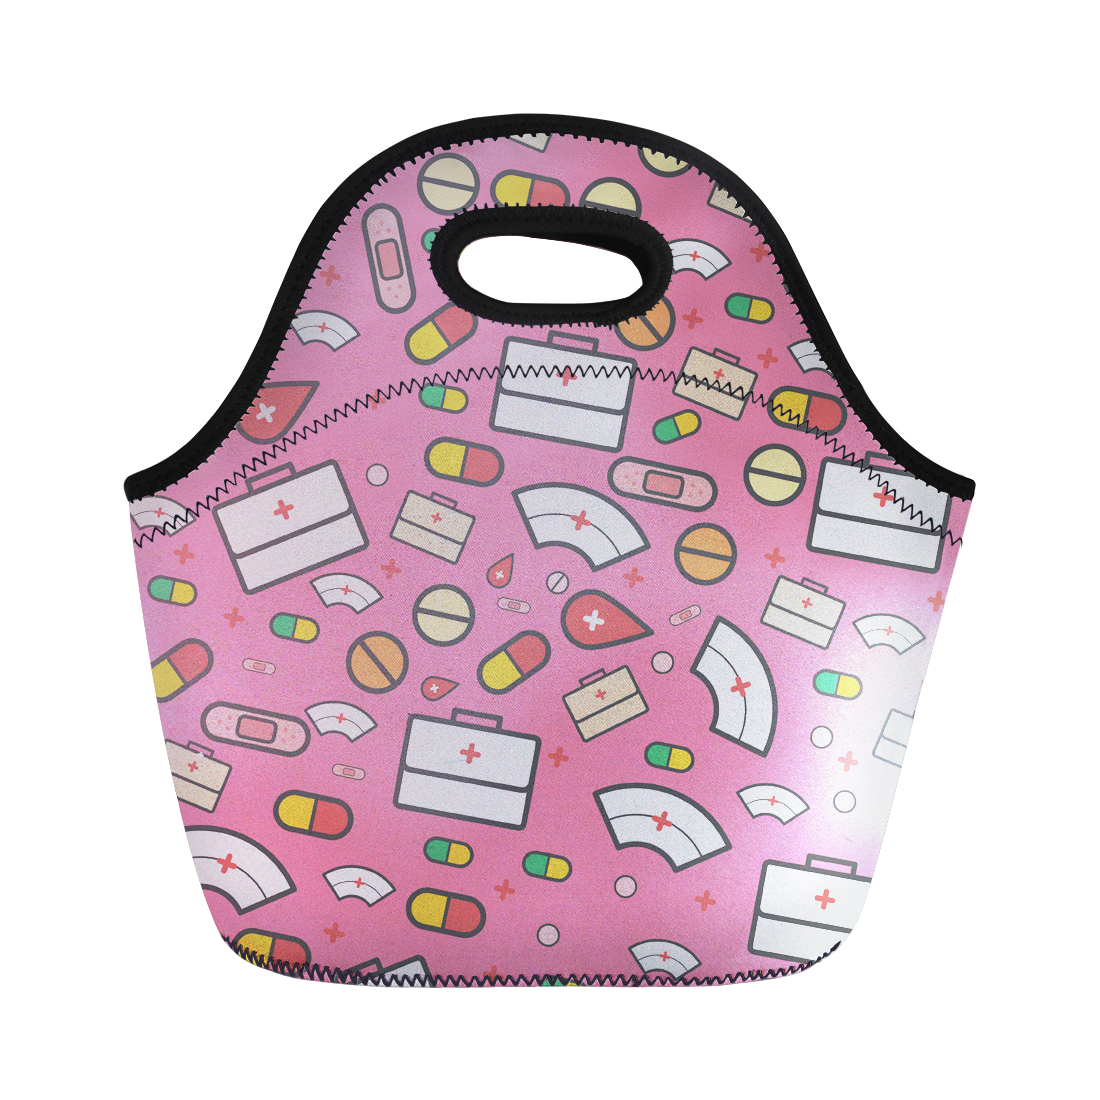 FORUDESIGNS NEW Nurse Print Lunch Bags for Kids Thermal Picnic Bag Pinic Insulate Food Bags Customize Lunch Box Bag Cartoon